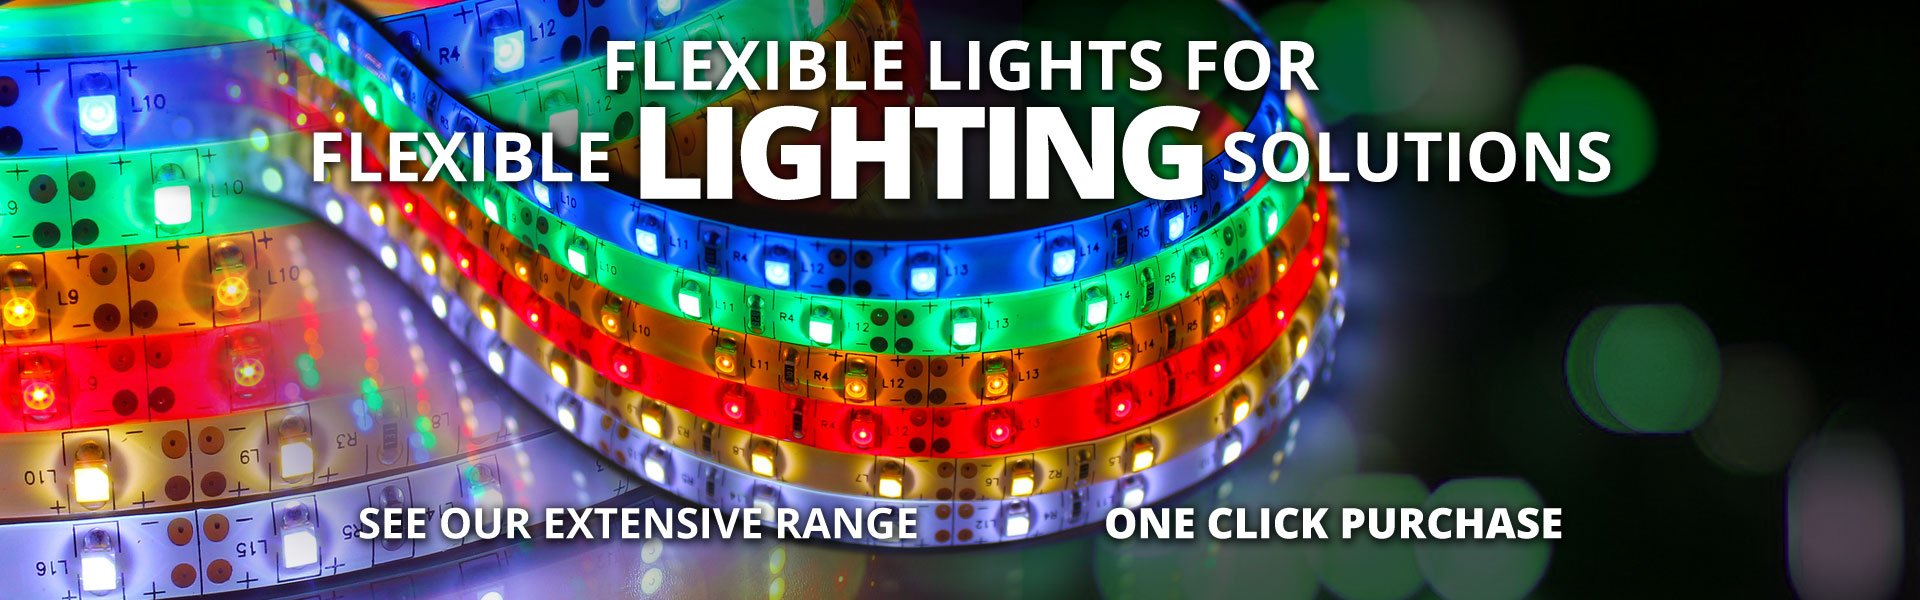 Flexible Lighting Solutions